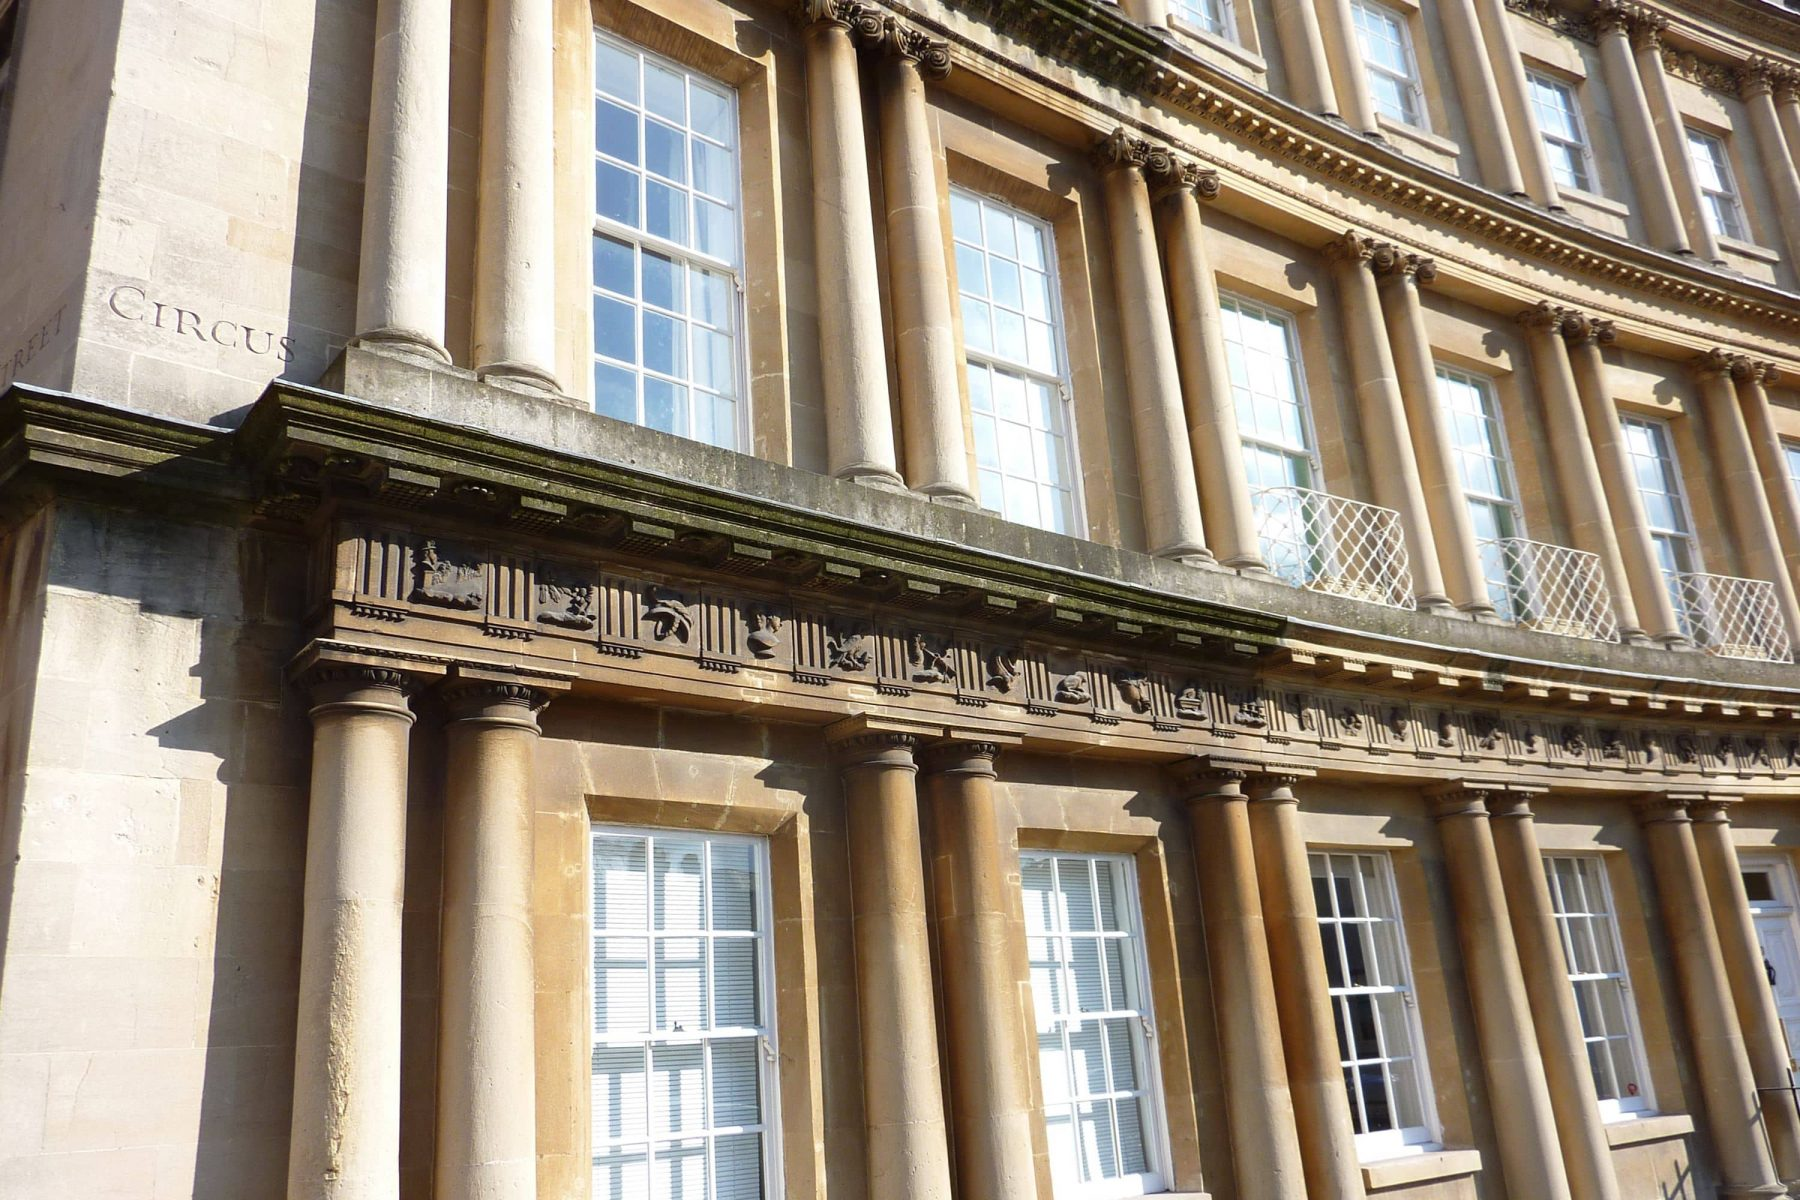 The Circus in Bath with sash windows